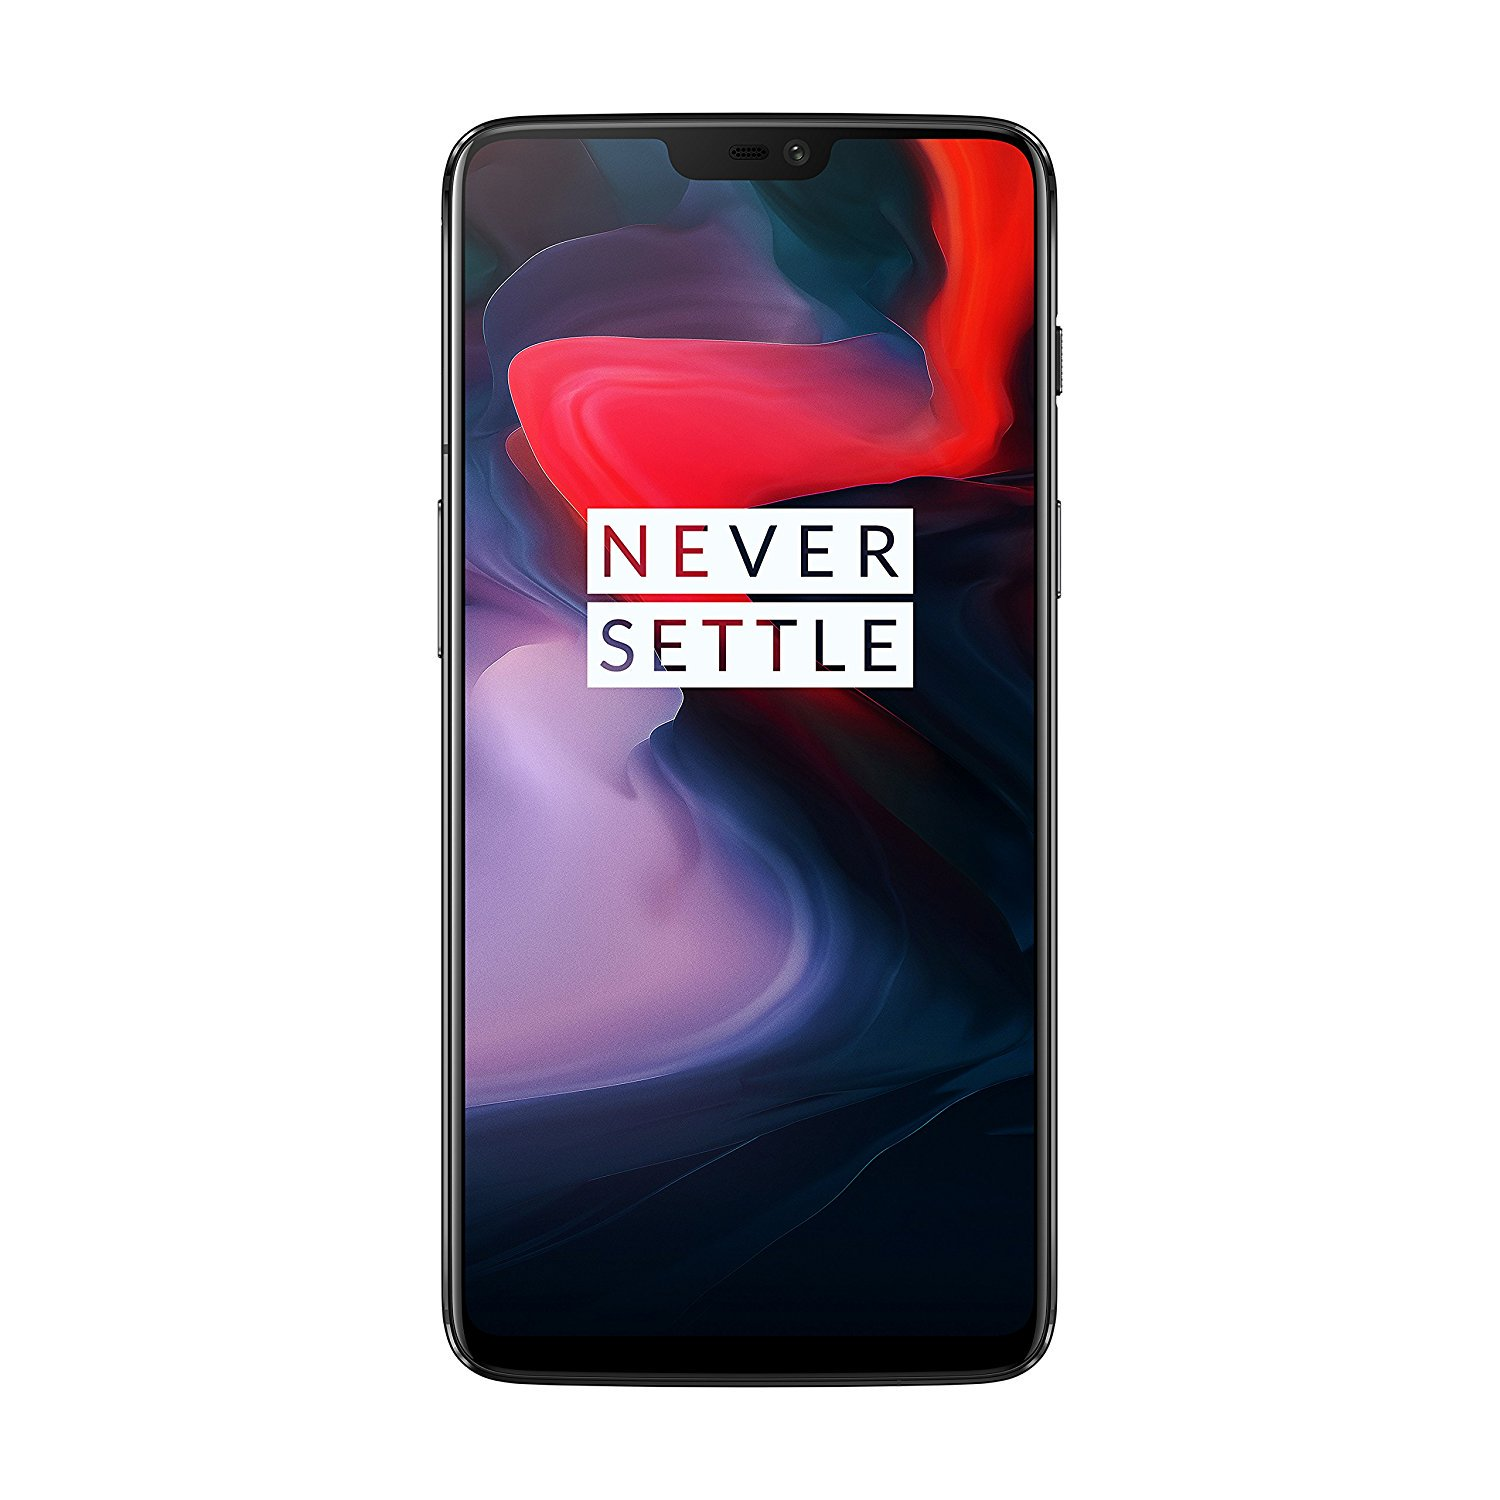 Amazon Listing reveals everything about the OnePlus 6 4